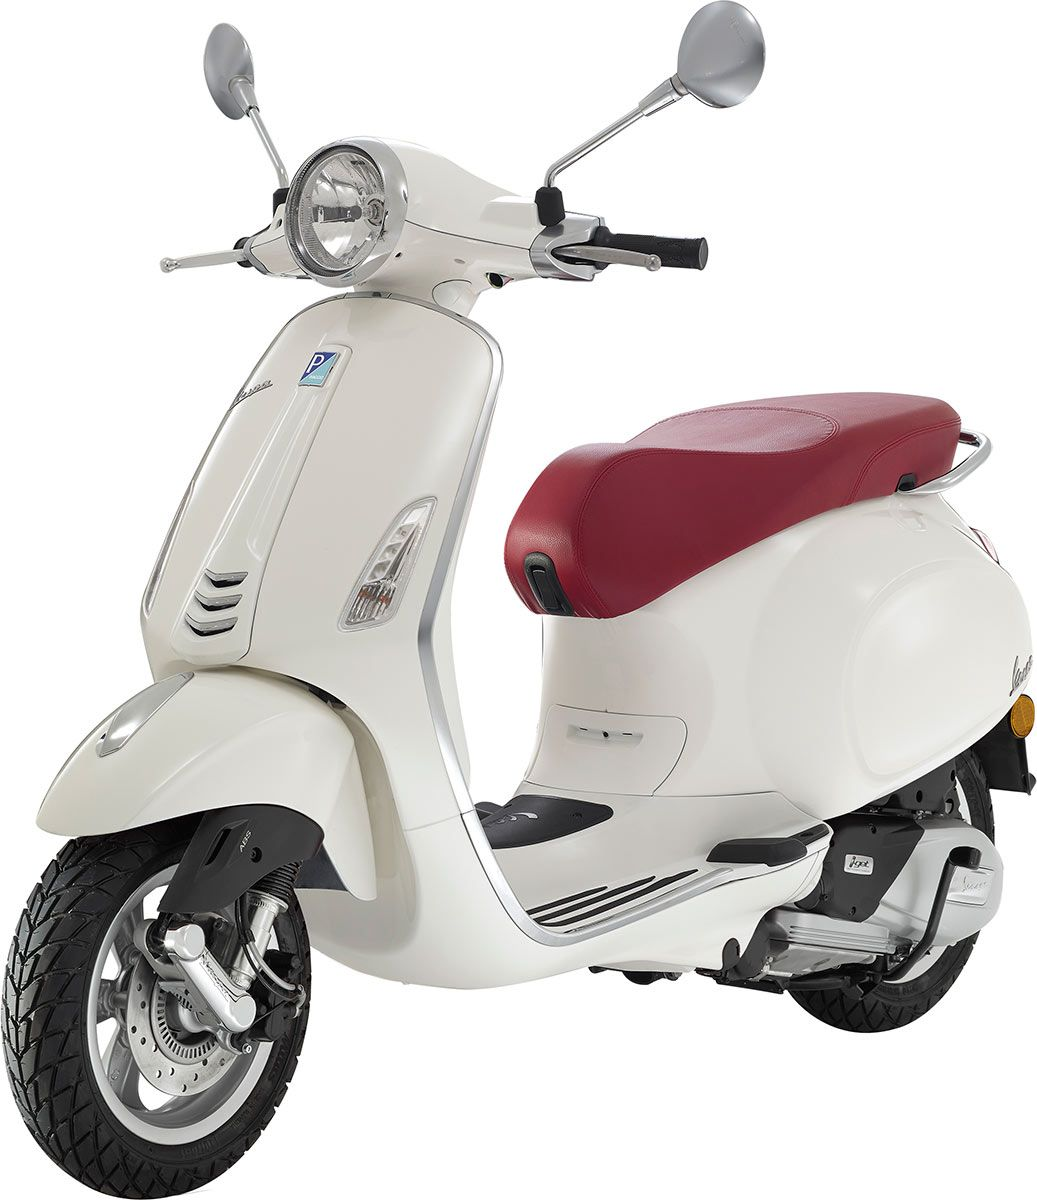 vespa primavera sprint 125 euro 4 et abs vespa. Black Bedroom Furniture Sets. Home Design Ideas